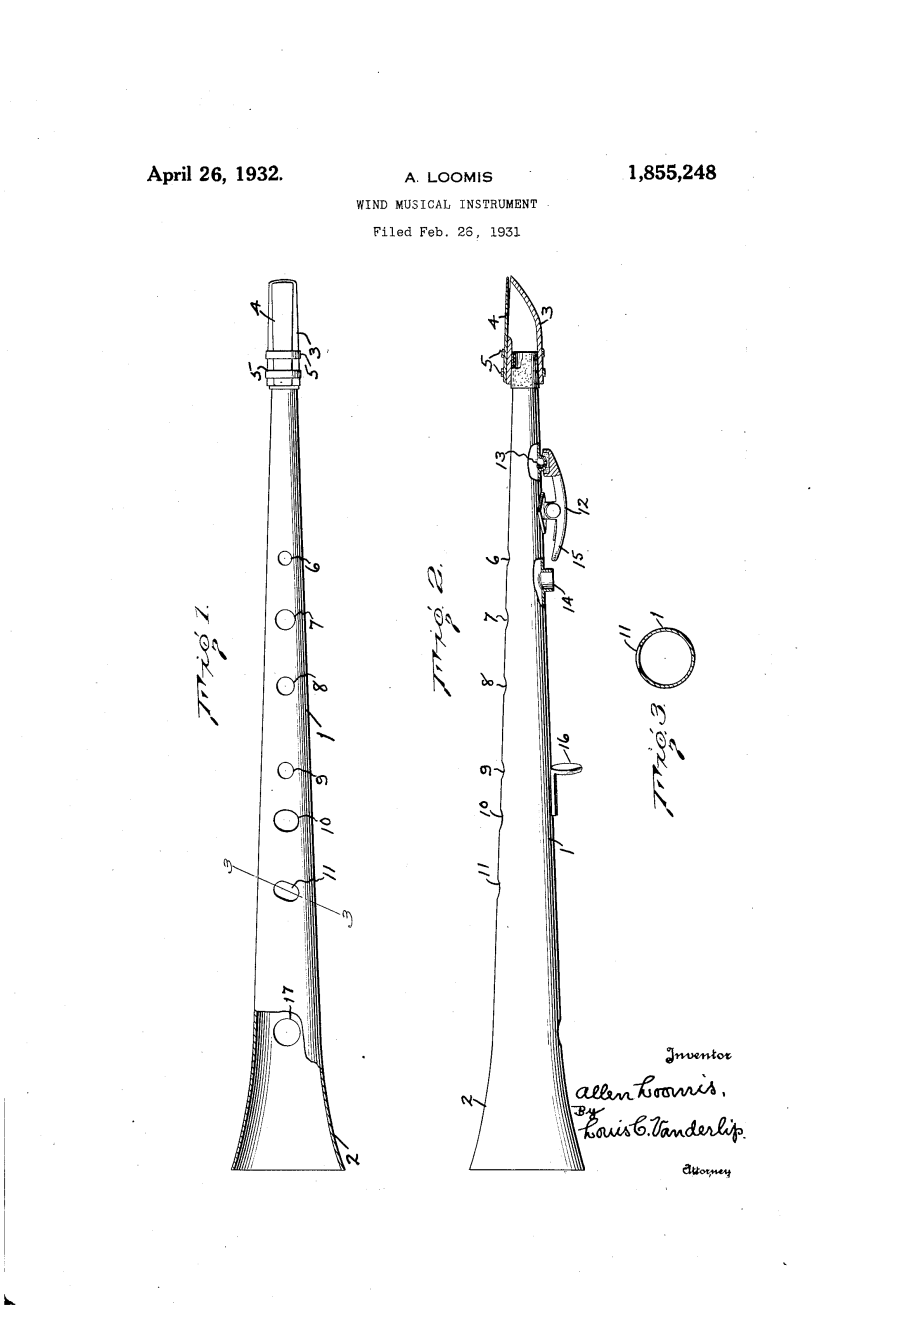 Clar-O-Sax patent drawing, A. Loomis, April 26, 1932, 1,855,248